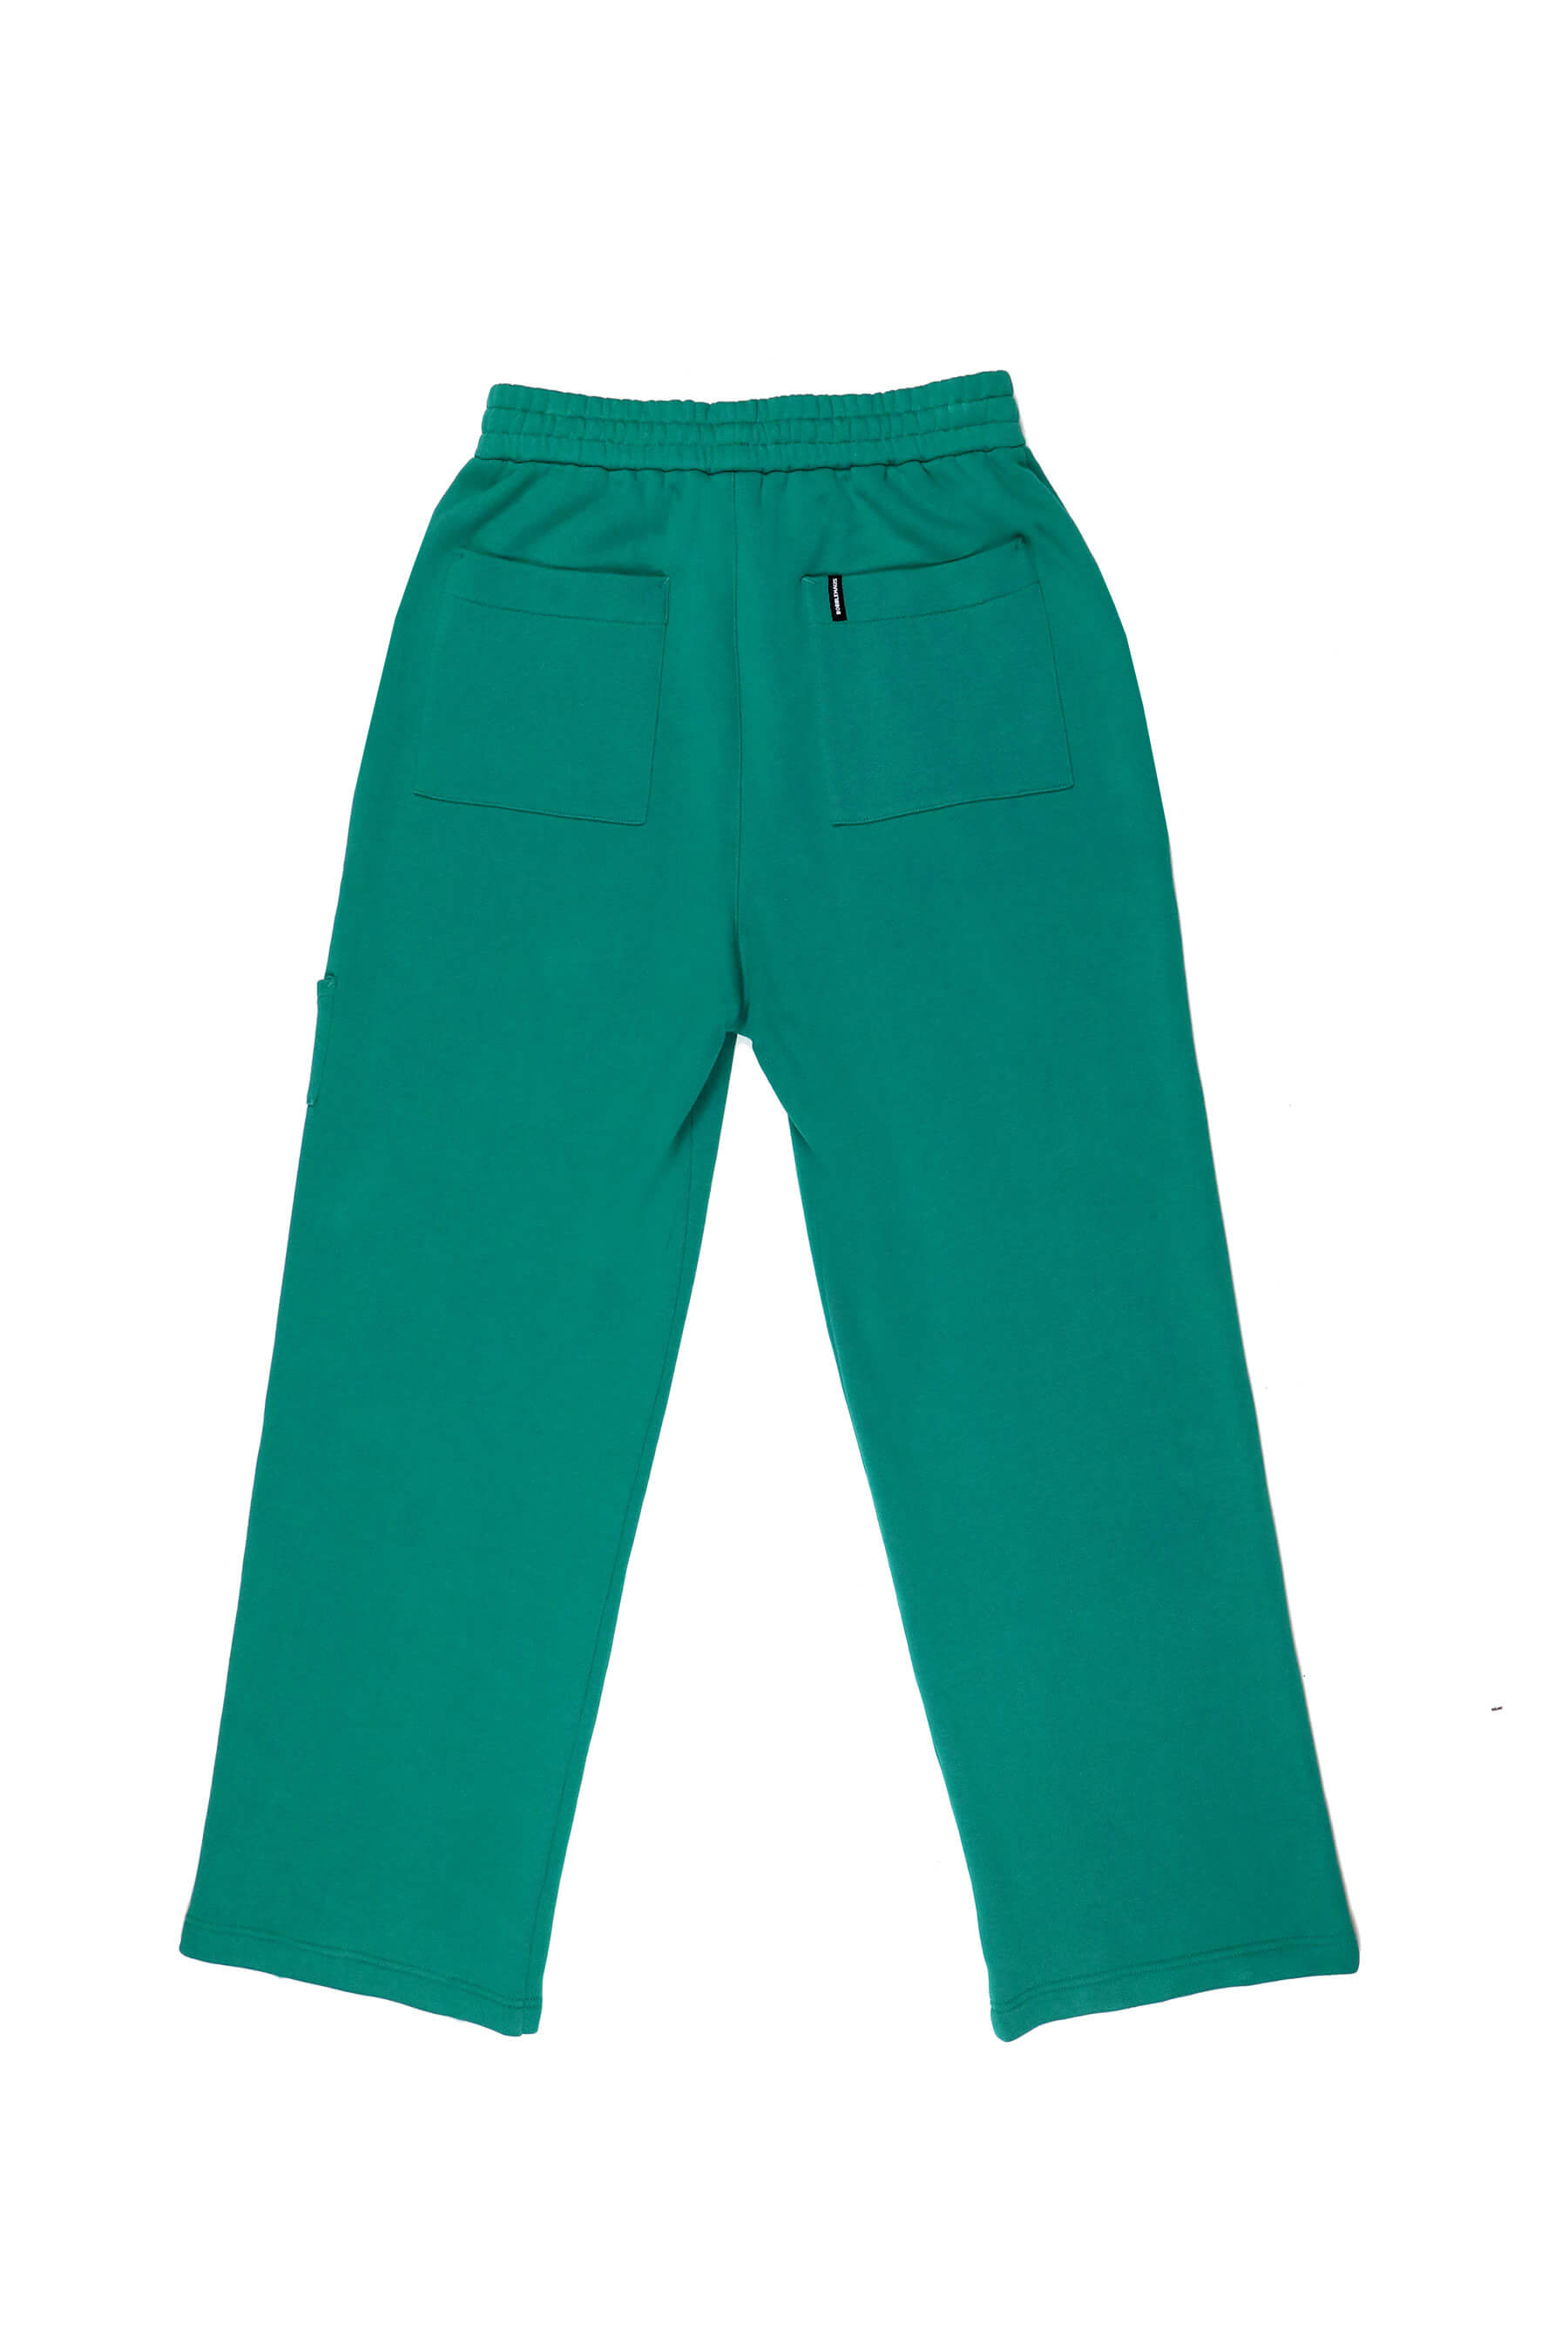 BH Recycled Cotton Utility Straight Sweatpant - Bobblehaus